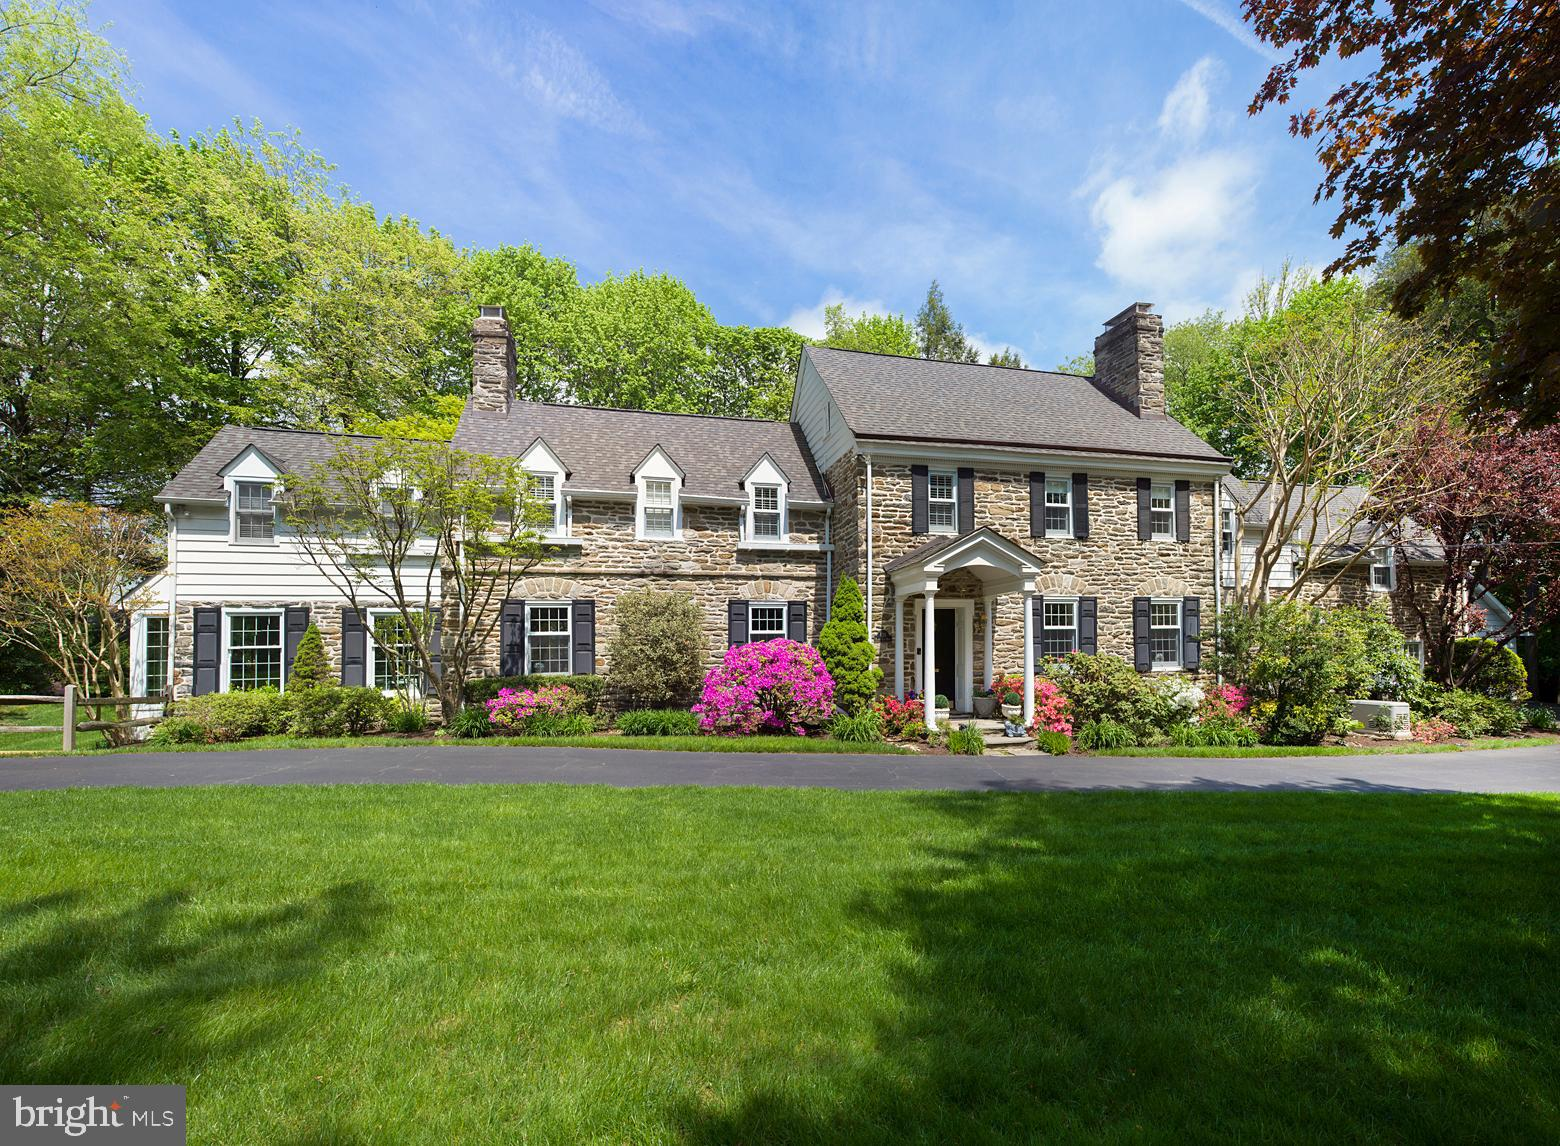 630 BLACK ROCK ROAD, BRYN MAWR, PA 19010